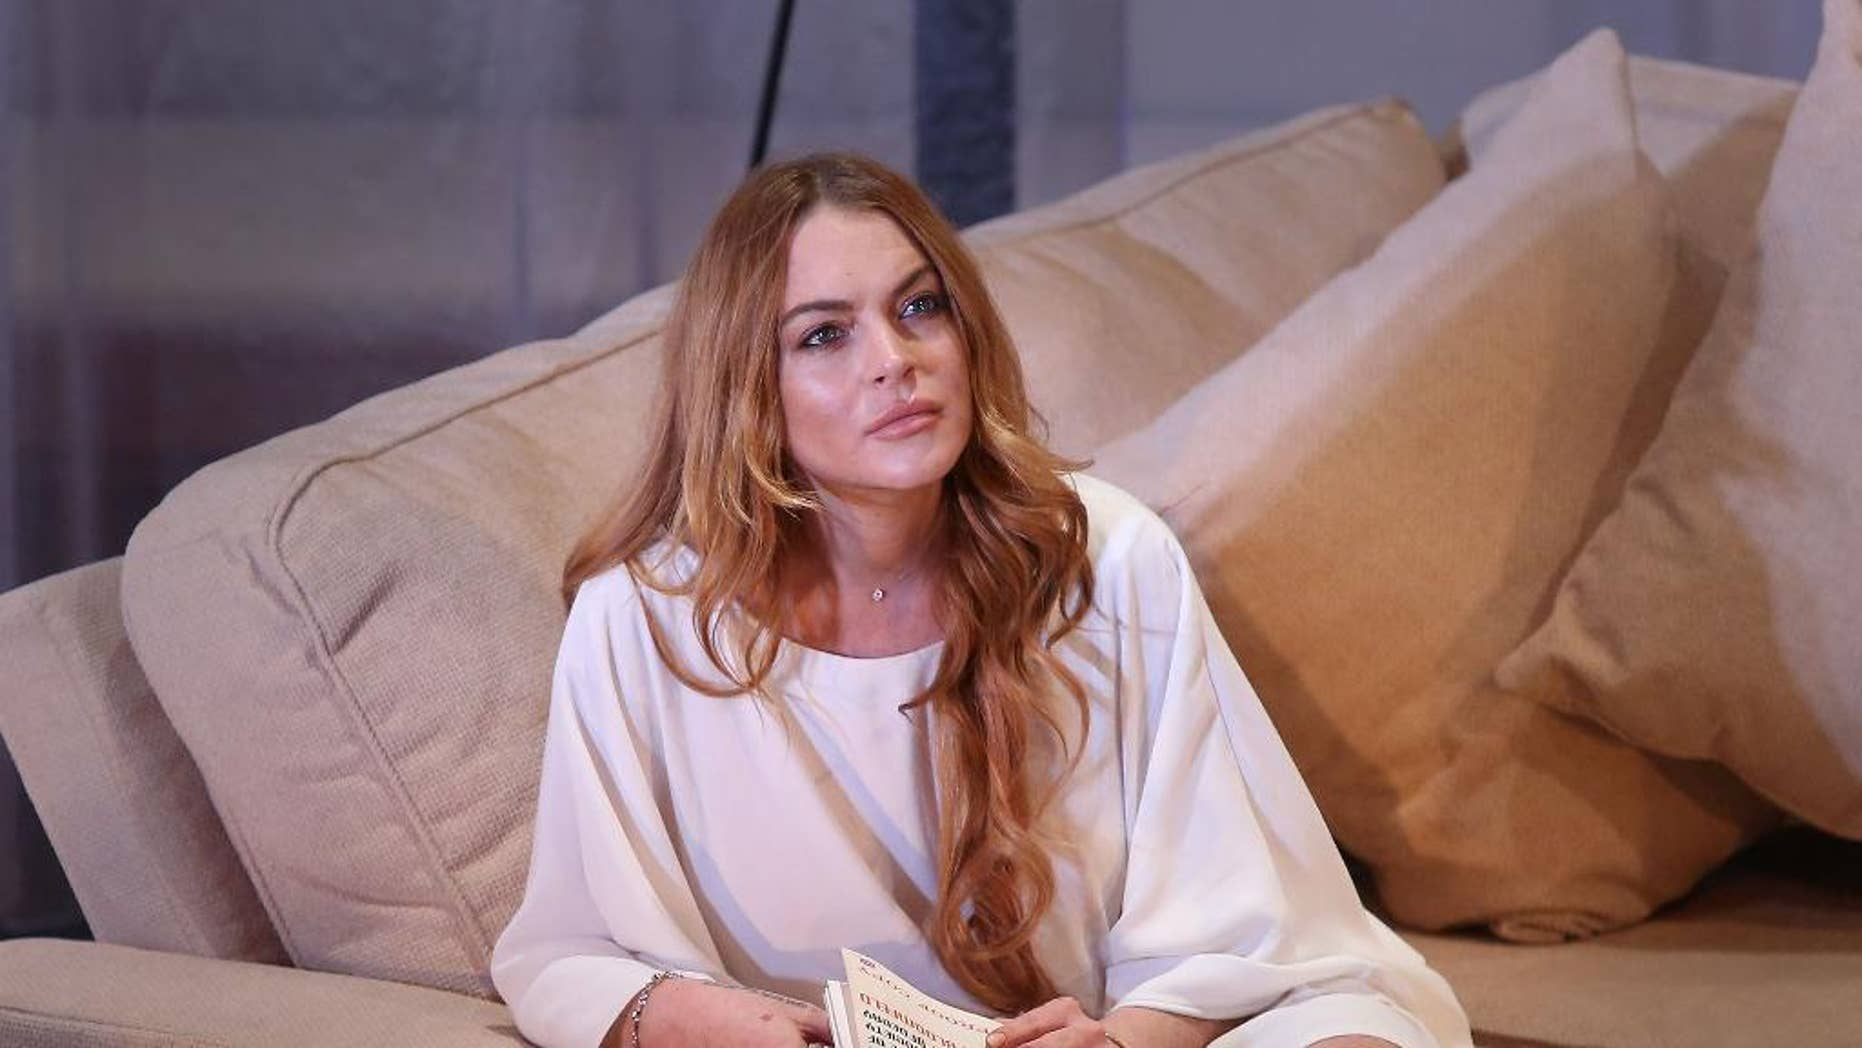 """FILE - In this Tuesday, Sept. 30, 2014 file photo, U.S actress Lindsay Lohan performs a scene from the play, """"Speed the Plow,"""" during a photocall at the Playhouse Theatre in central London. Lohan's wreckless driving case is scheduled to be called in a Los Angeles court on Thursday, May 7, 2015, to update the judge on her progress with community service. (Photo by Joel Ryan/Invision/AP, File)"""